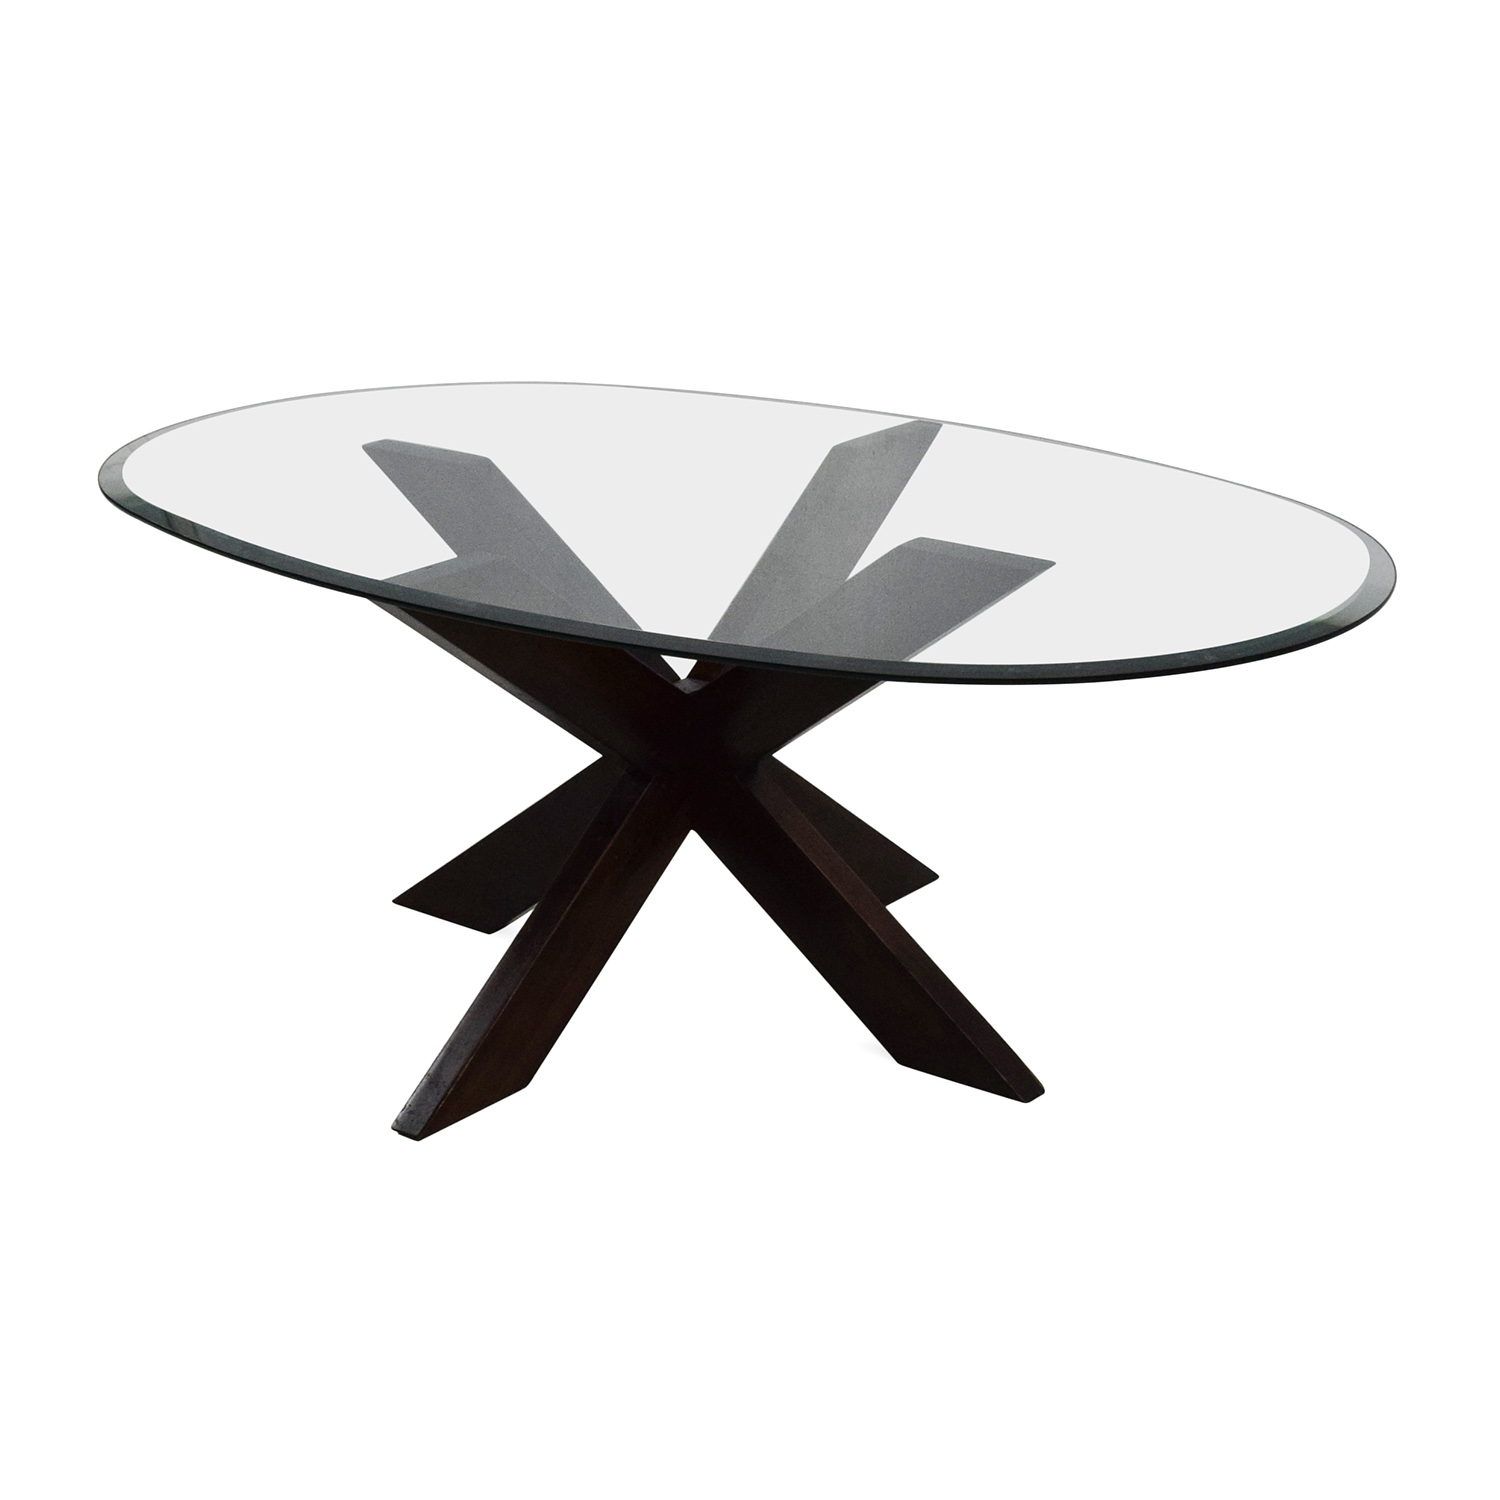 74% off - pier 1 imports pier 1 imports simon x coffee table / tables